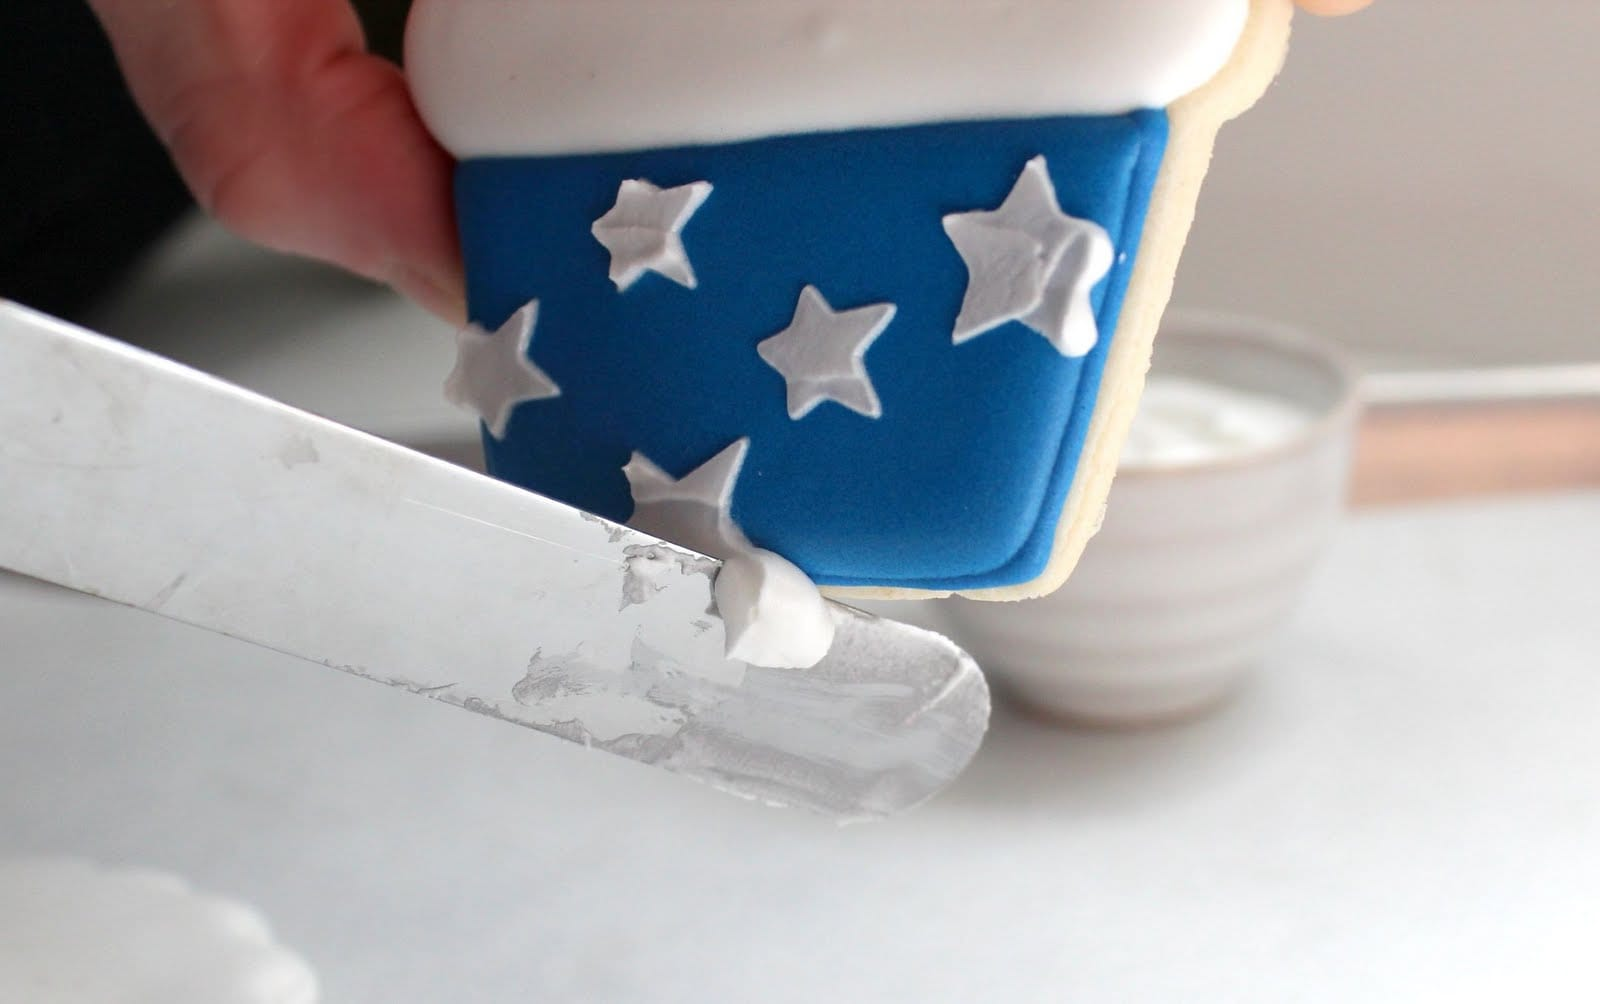 A knife removing extra frosting from a cupcake-shaped cookie